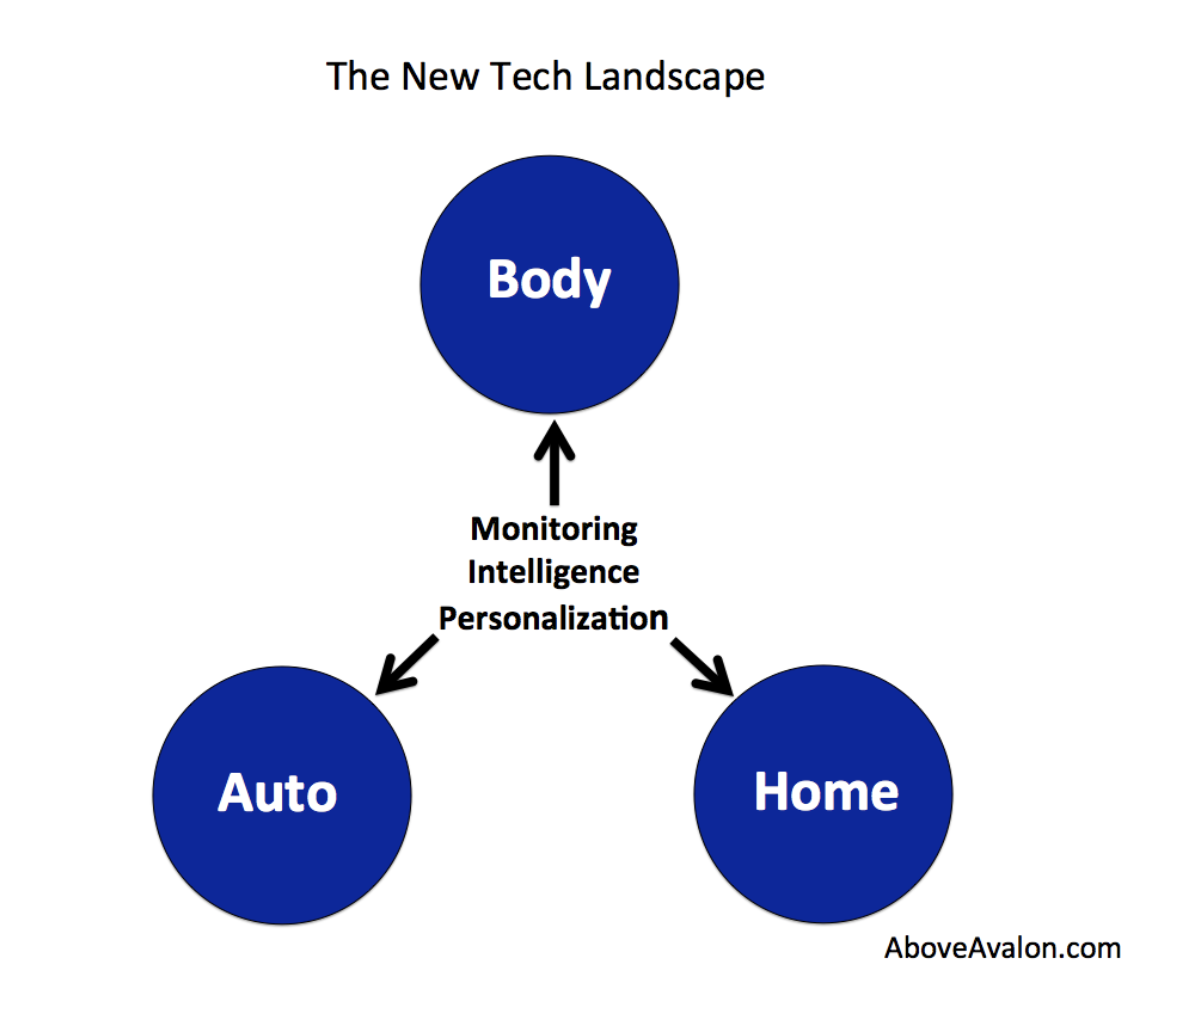 The New Tech Landscape